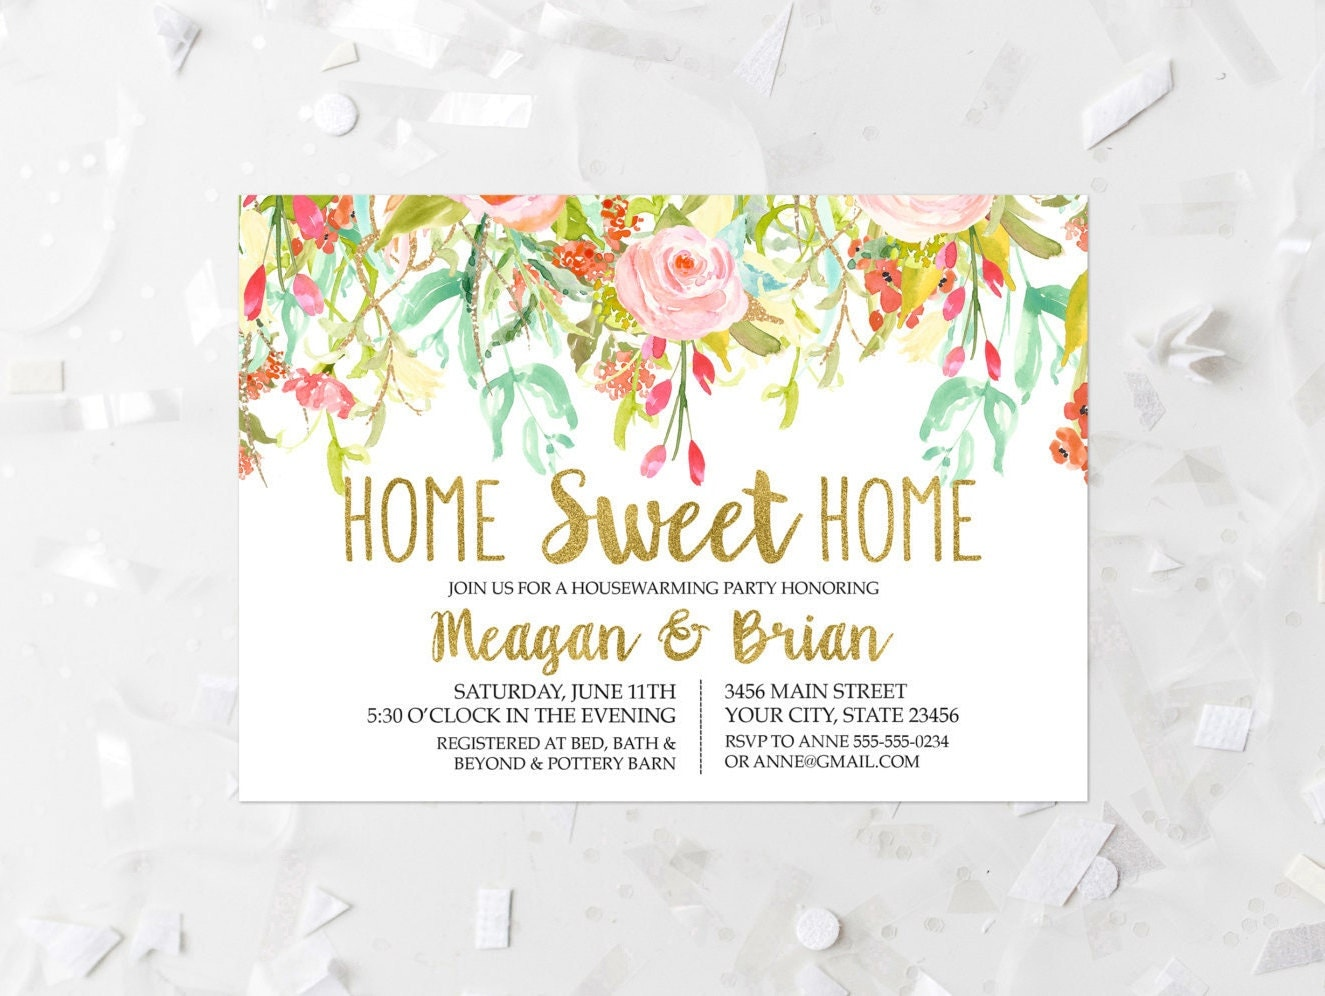 Housewarming invites – Invitation for Housewarming Party